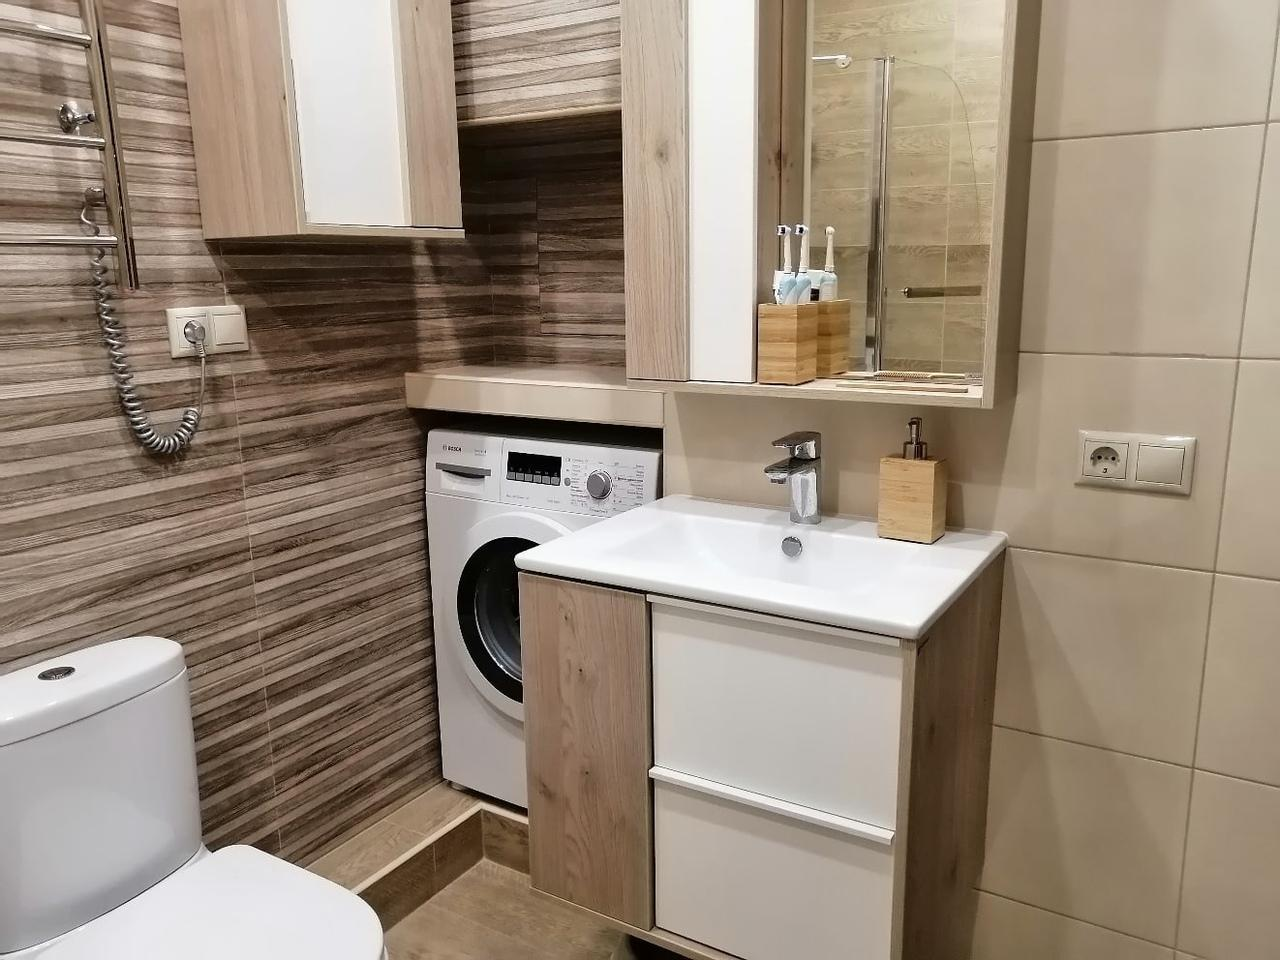 Apartment, Studio, 25 m2 in Moscow 89995453830 buy 6